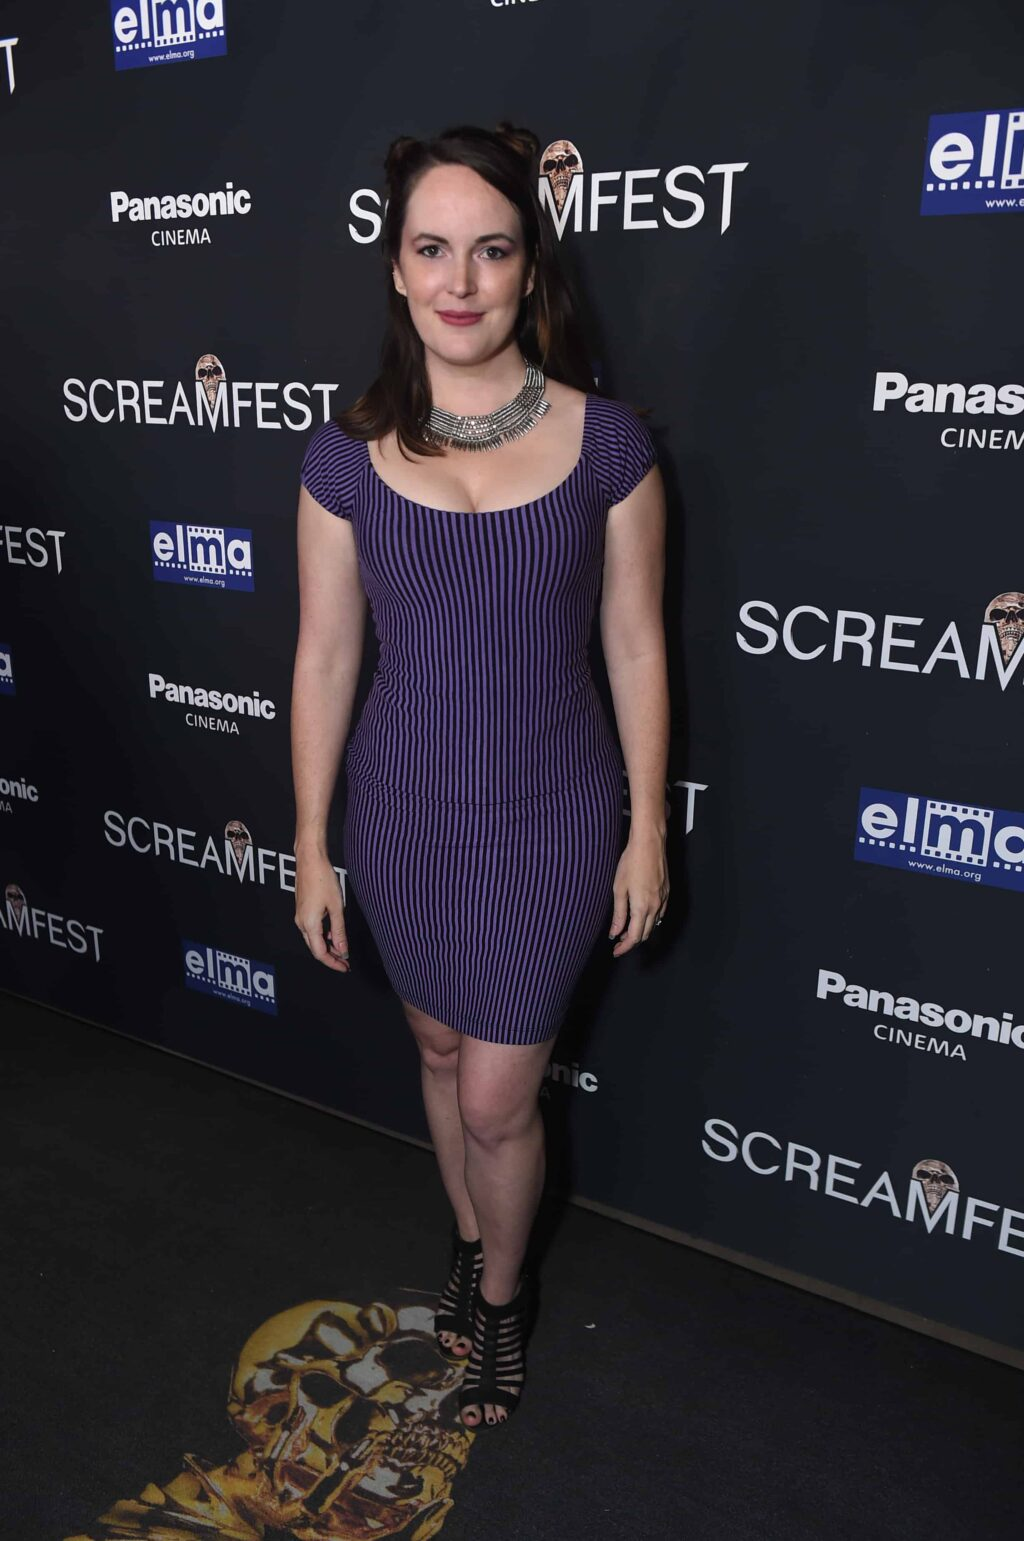 Rodman Flender 1024x1541 - SCREAMFEST L.A. 2019 – Exclusive Opening Night Photos & Interviews with EAT, BRAINS, LOVE Director Rodman Flender & More